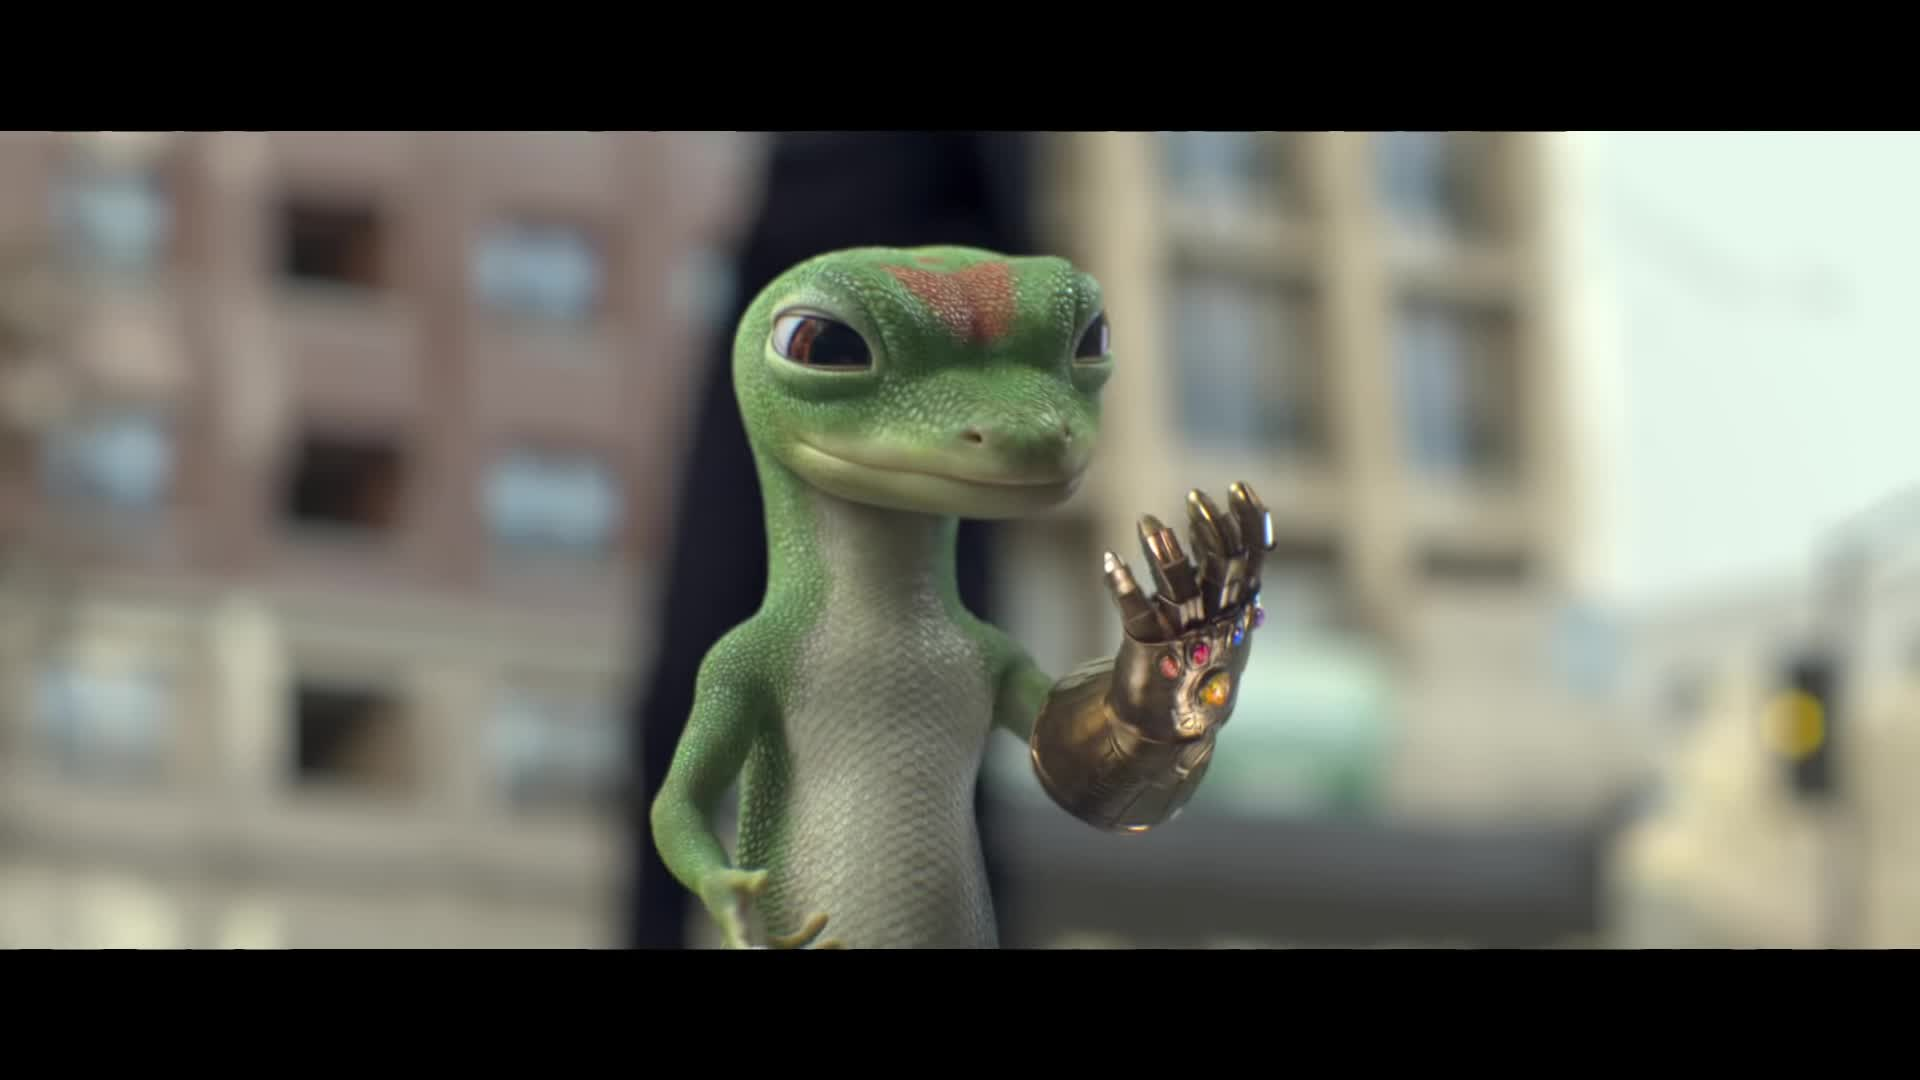 Latest Geico Gifs Find The Top Gif On Gfycat